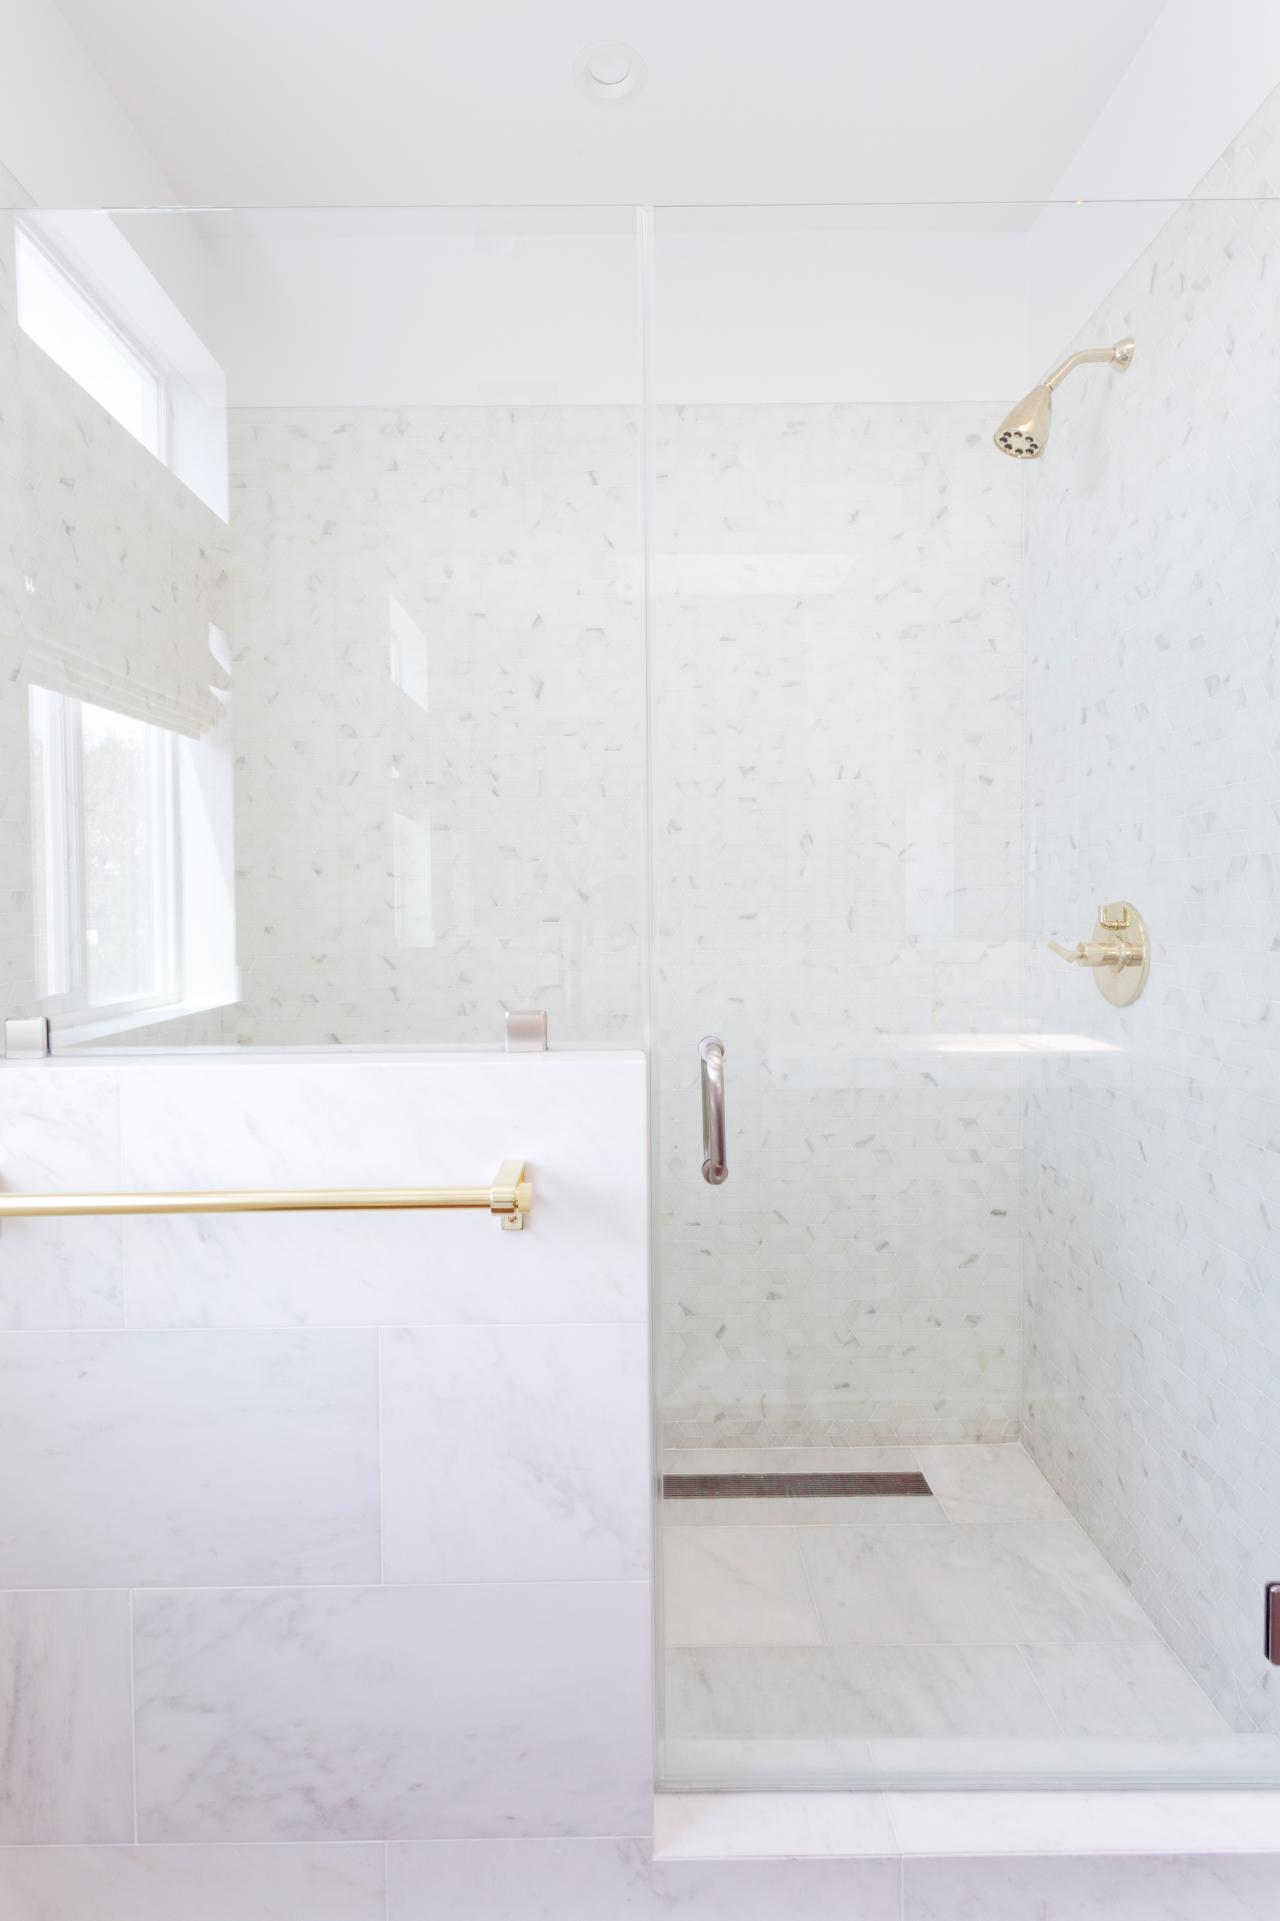 How To Clean Soap Scum From Shower Doors Diy